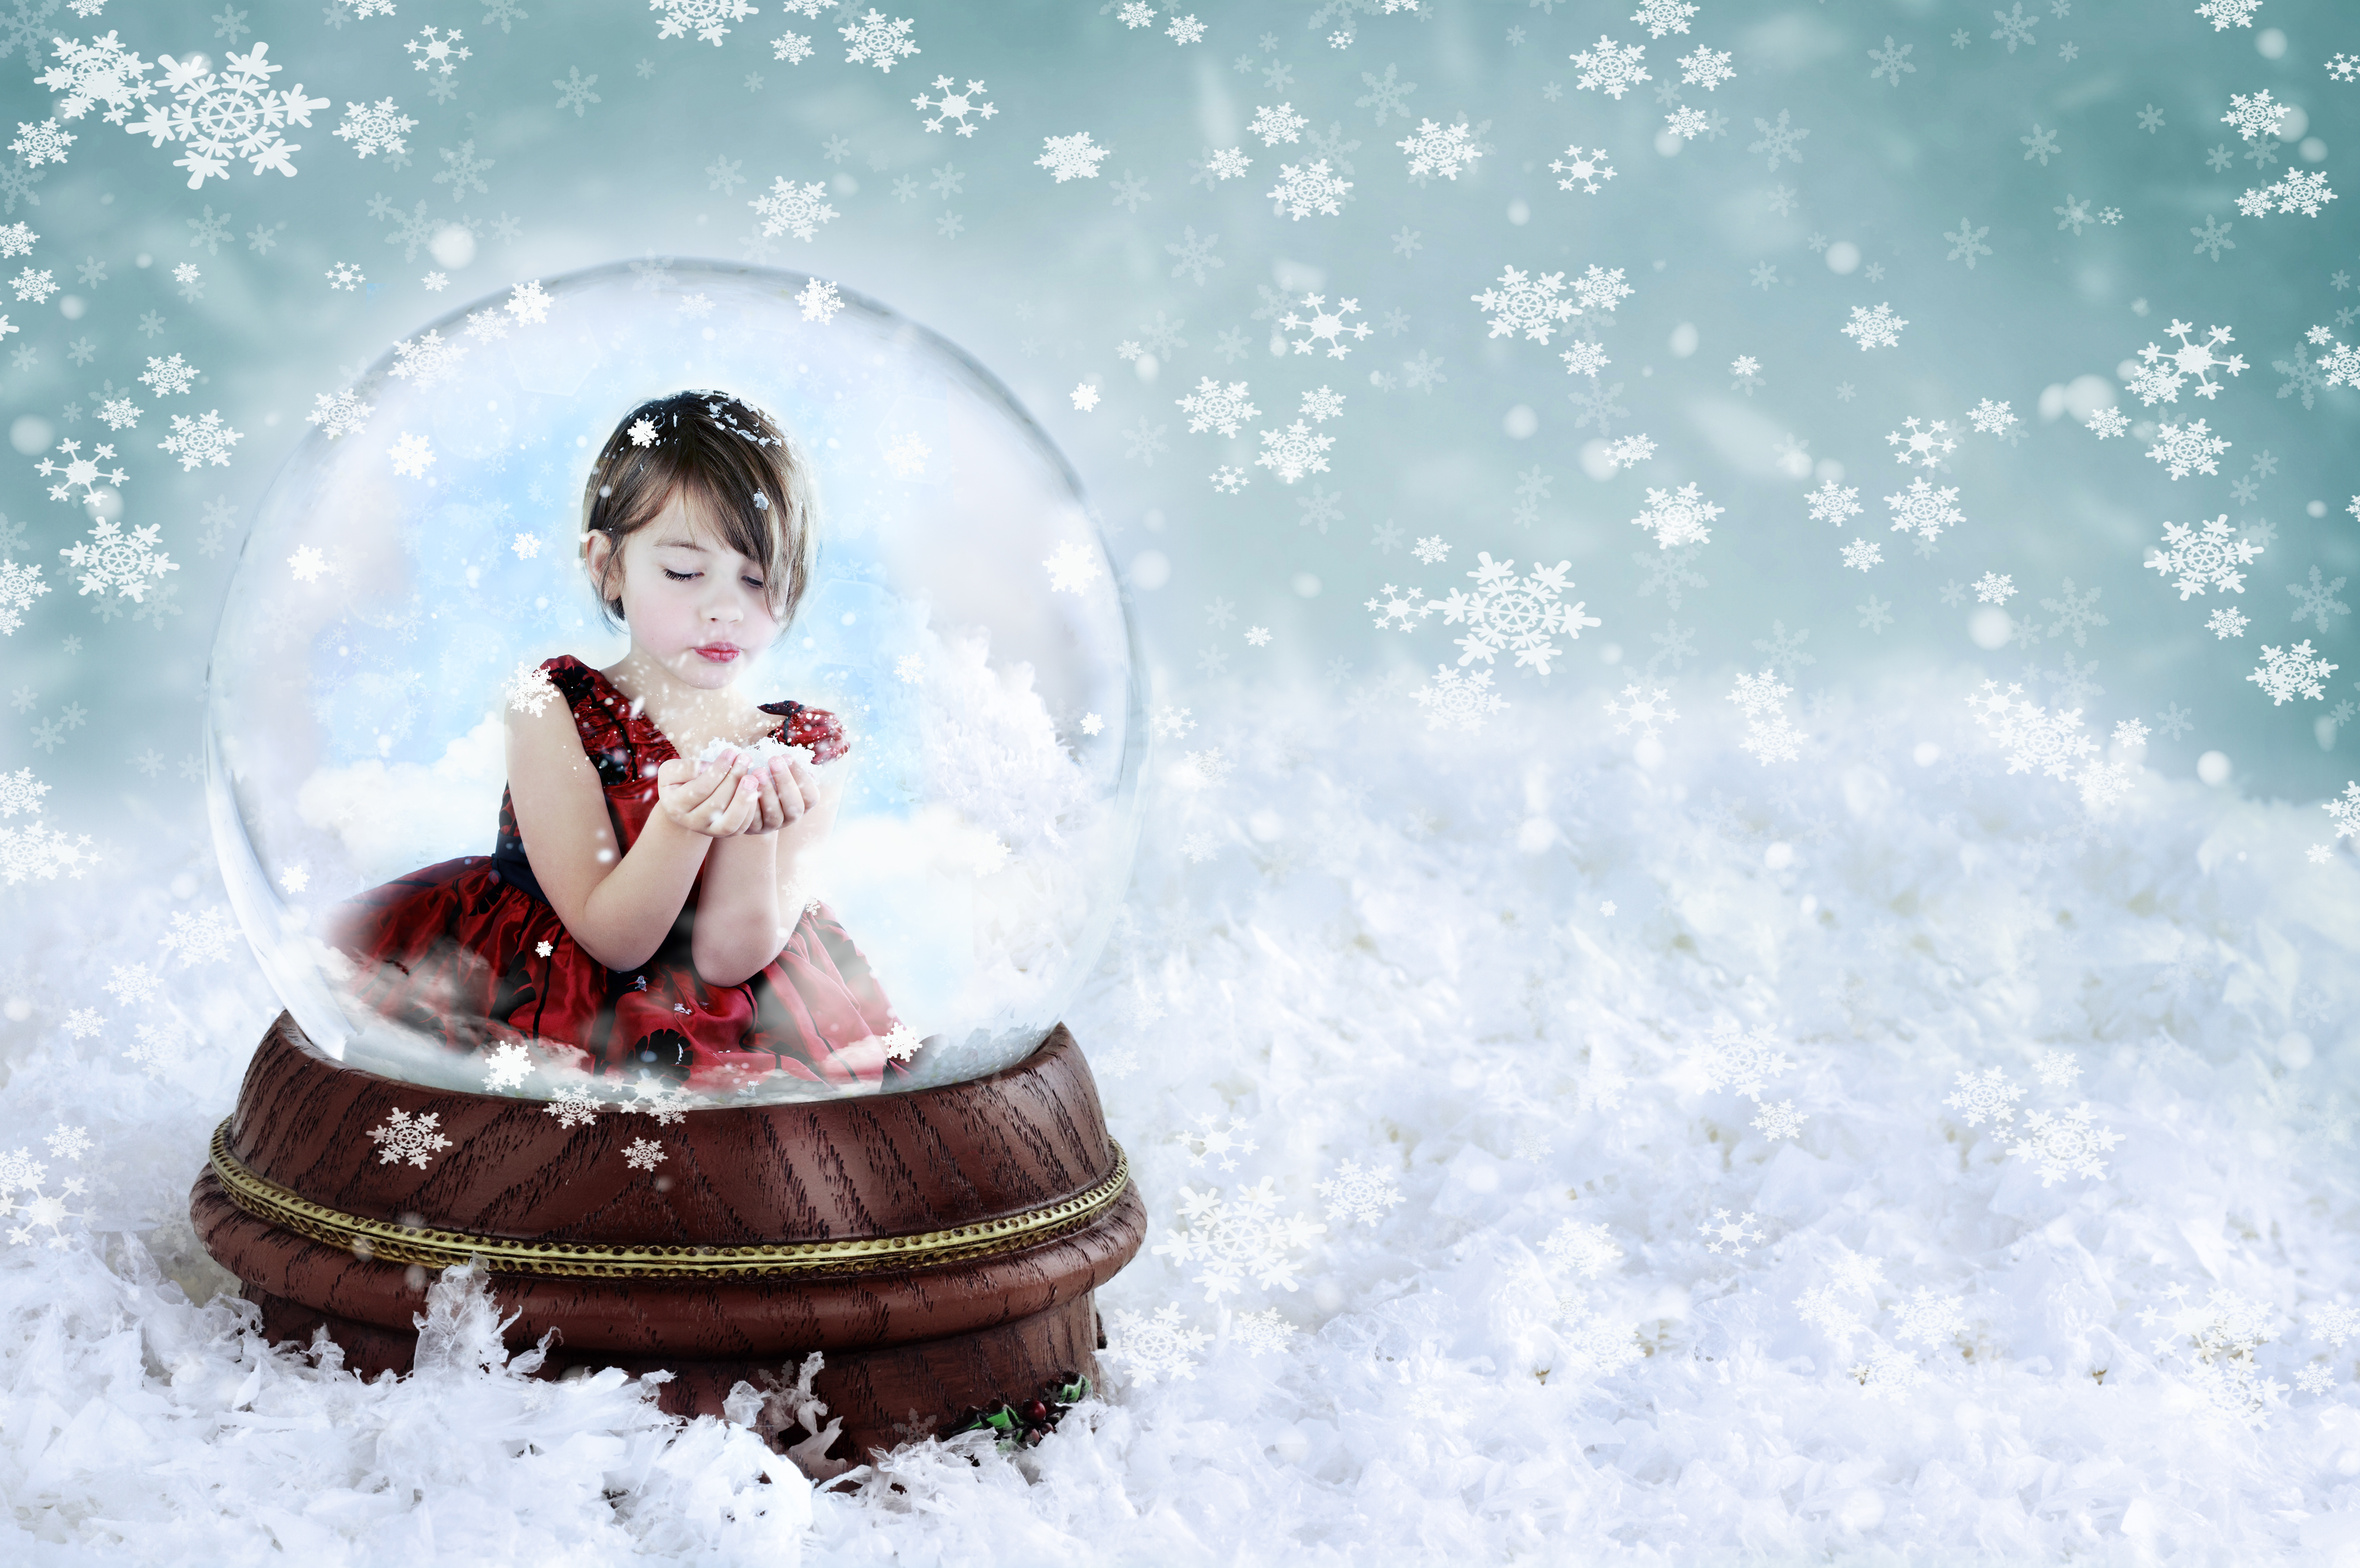 boule neige - Girl in Snow Globe